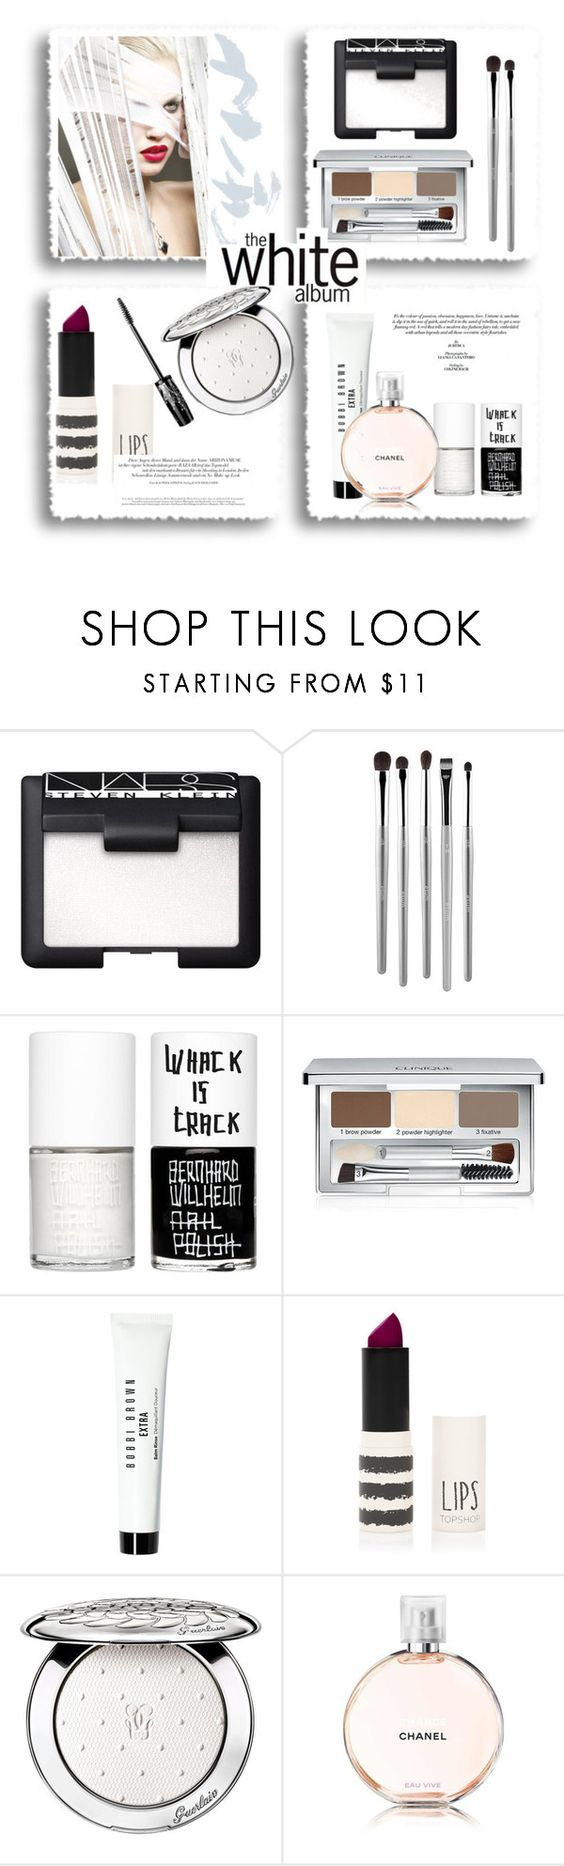 """The white album..."" by gul07 ❤ liked on Polyvore featuring beauty, NARS Cosmetics, esum, Uslu Airlines, Clinique, Bobbi Brown Cosmetics, Topshop and Guerlain"